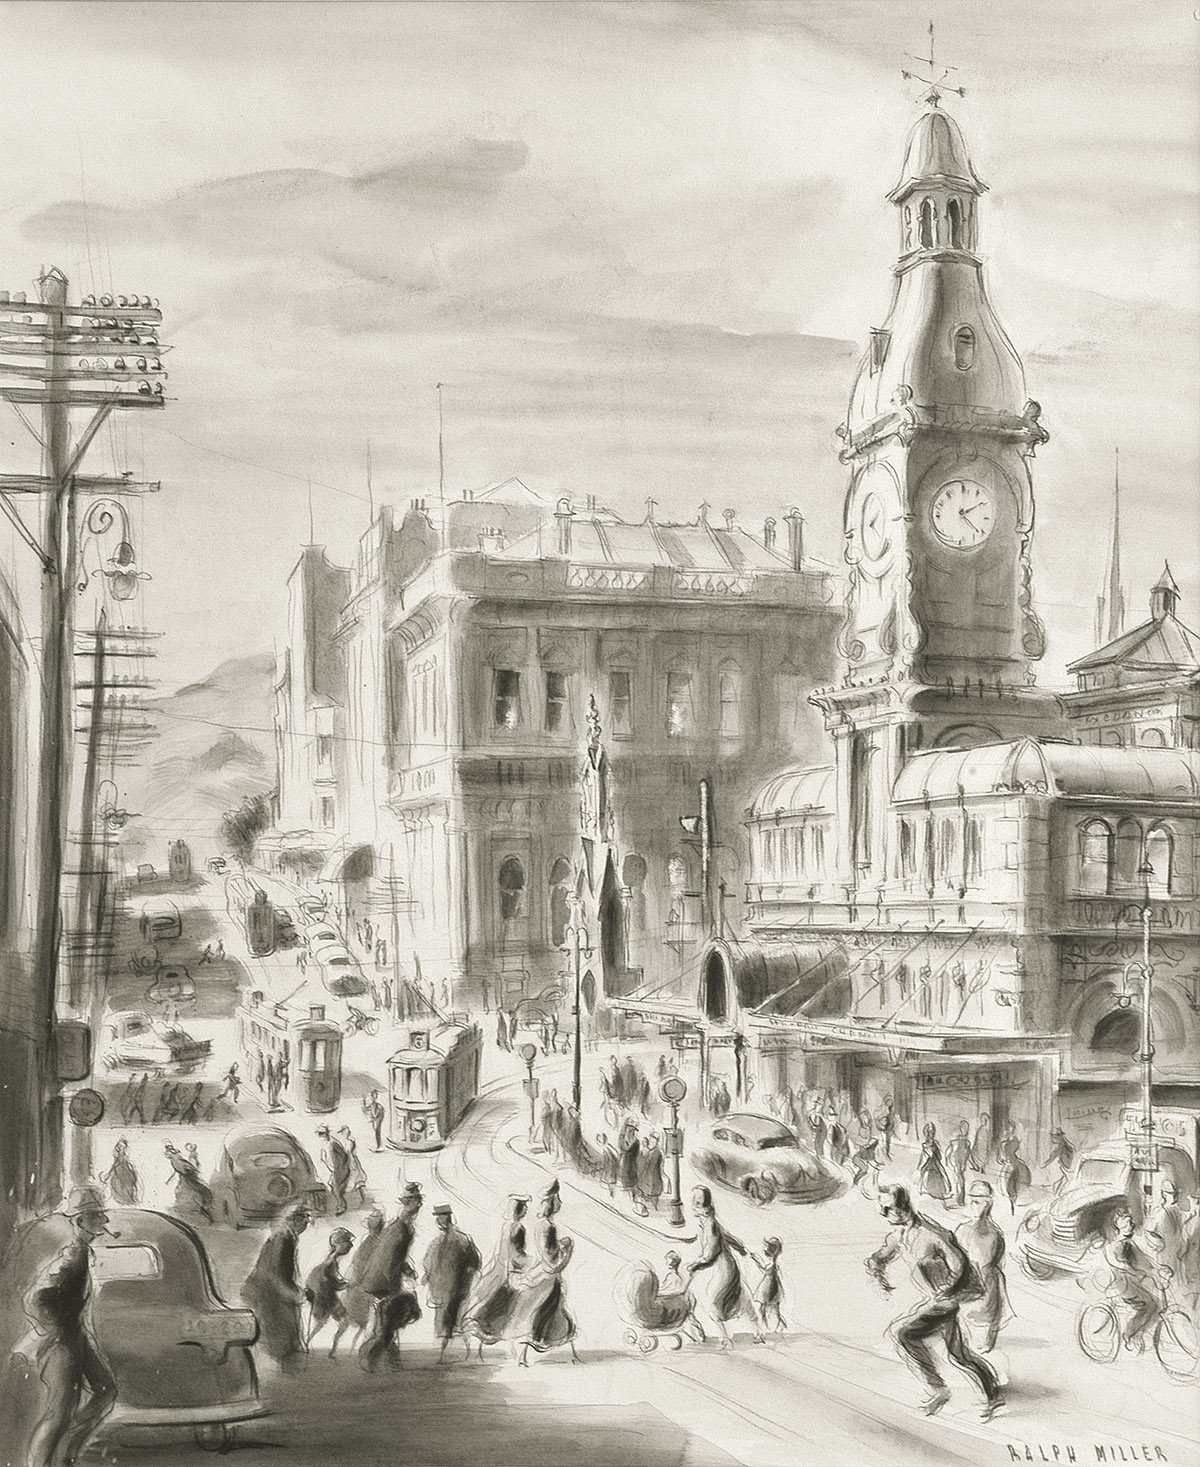 People and traffic around the 'Exchange' - a wash drawing by Ralph Miller c.1950.